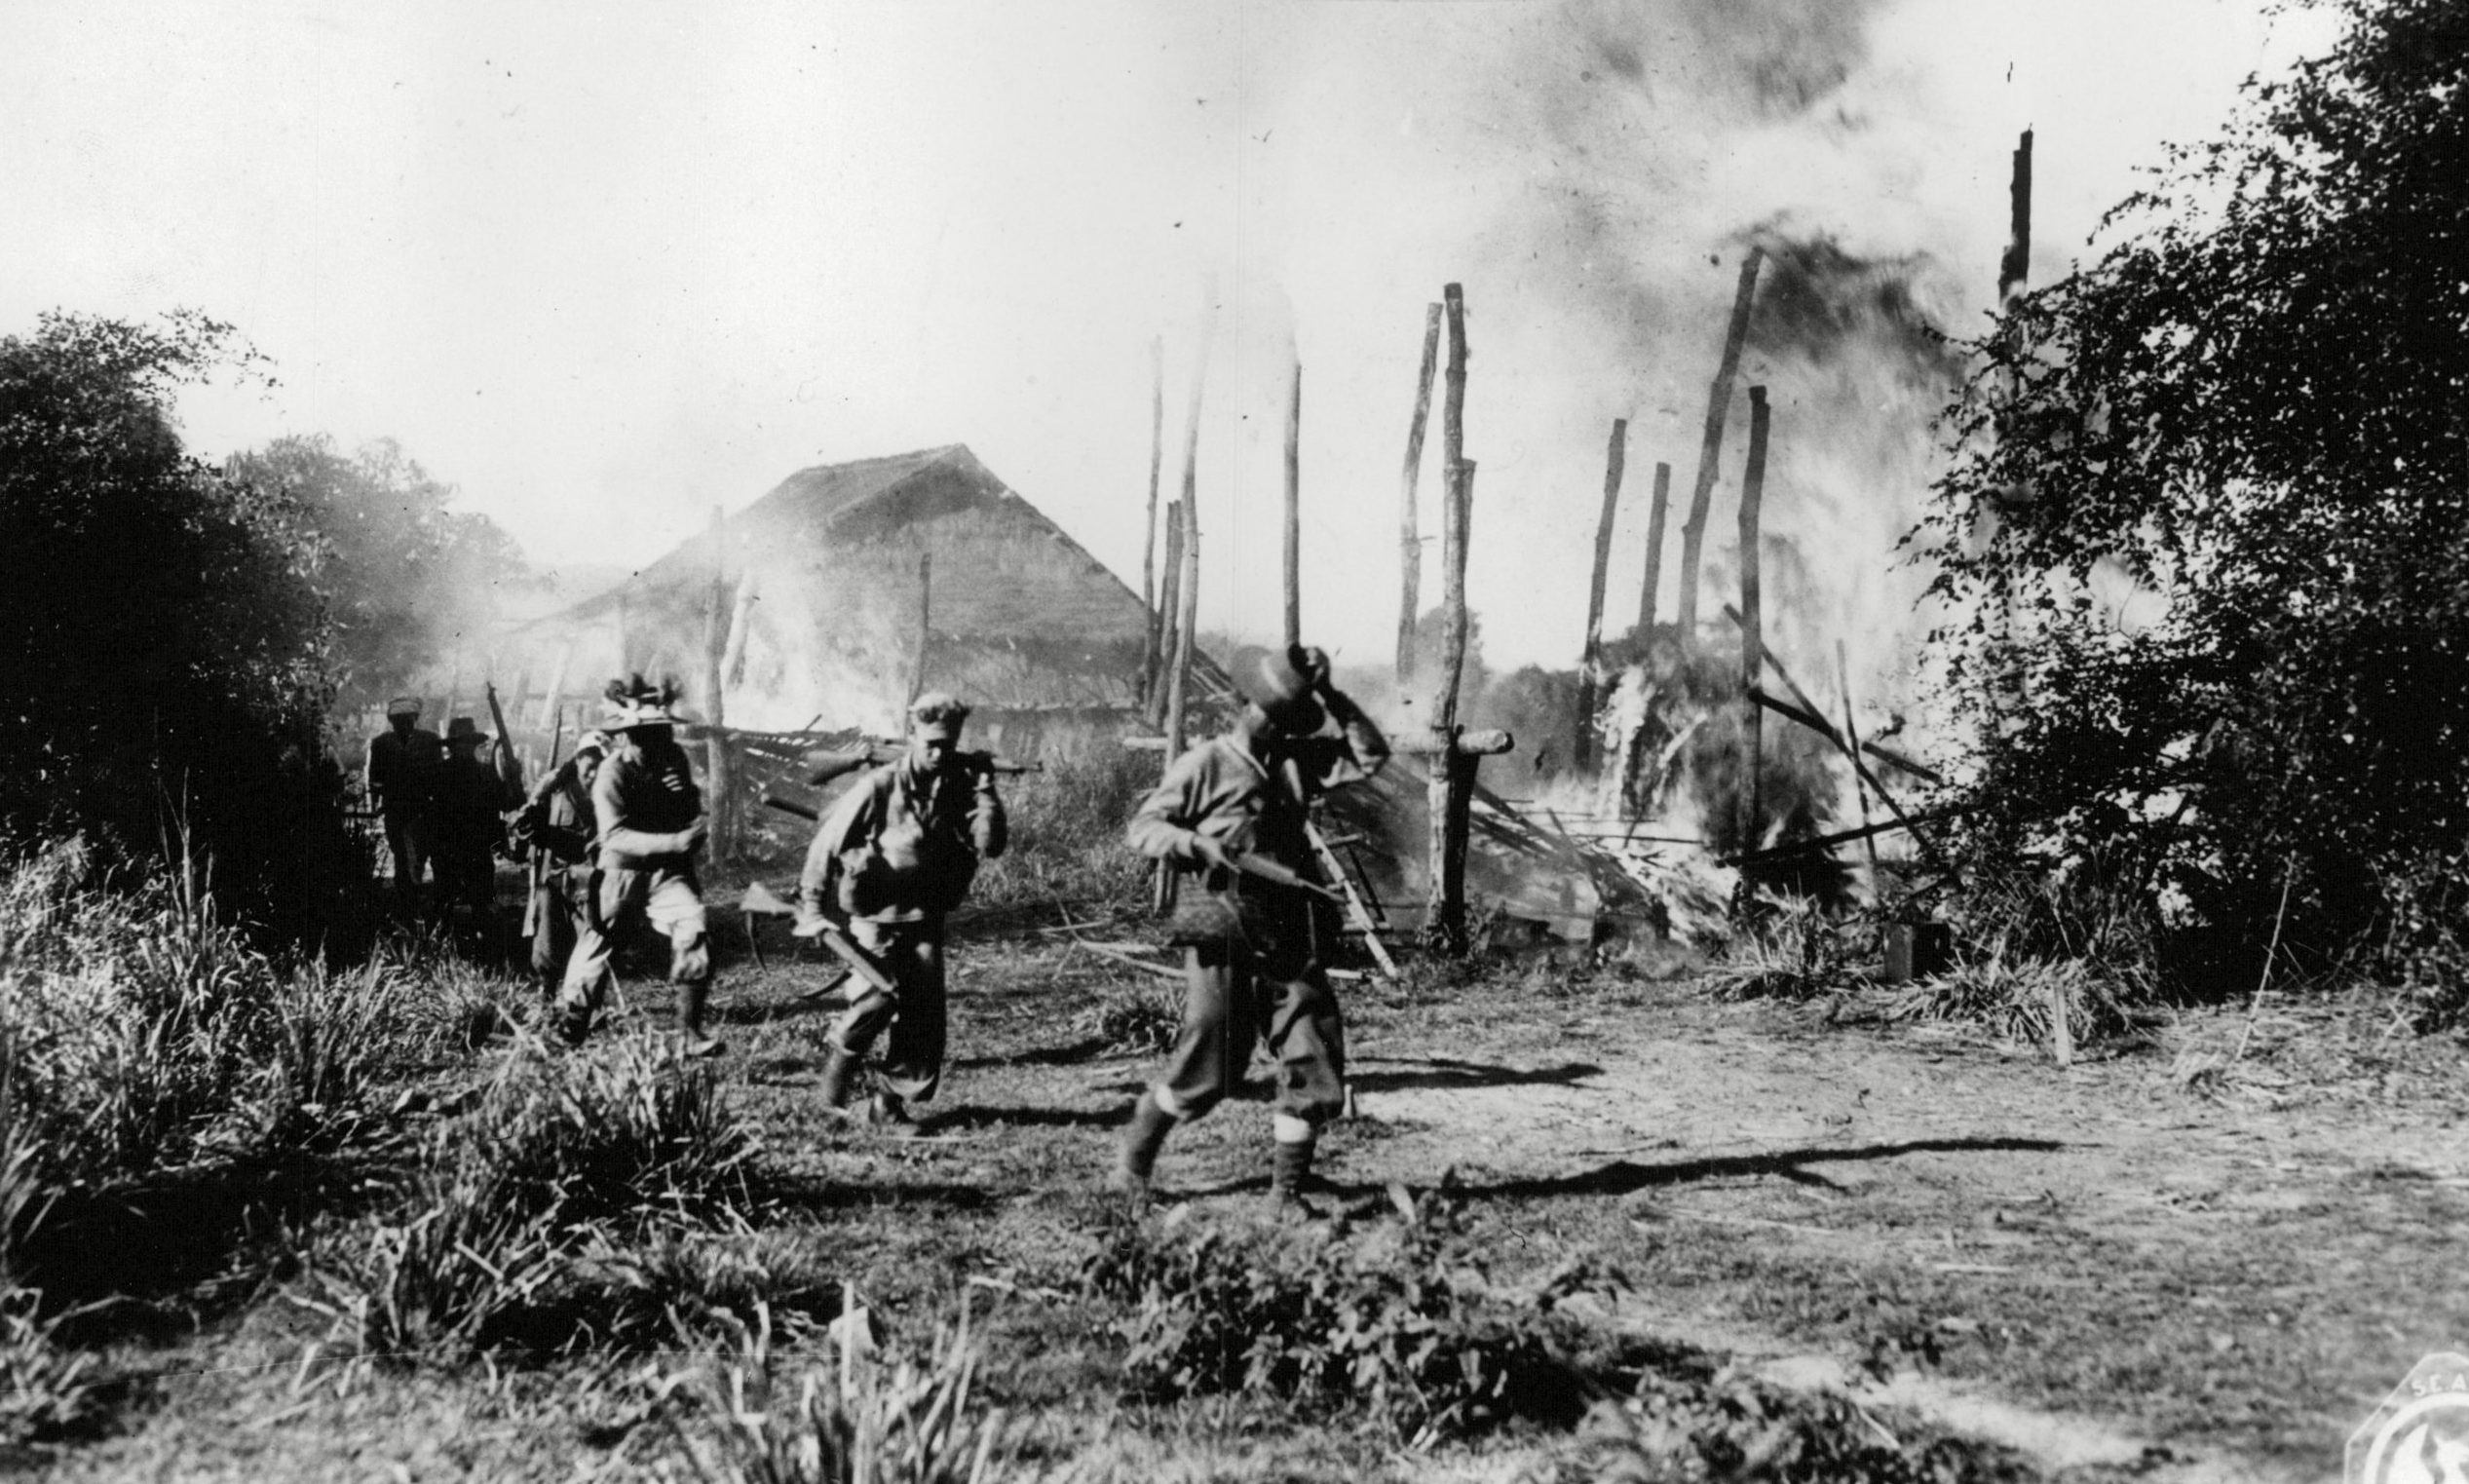 Hill tribesman fighting for the British Army in Burma.